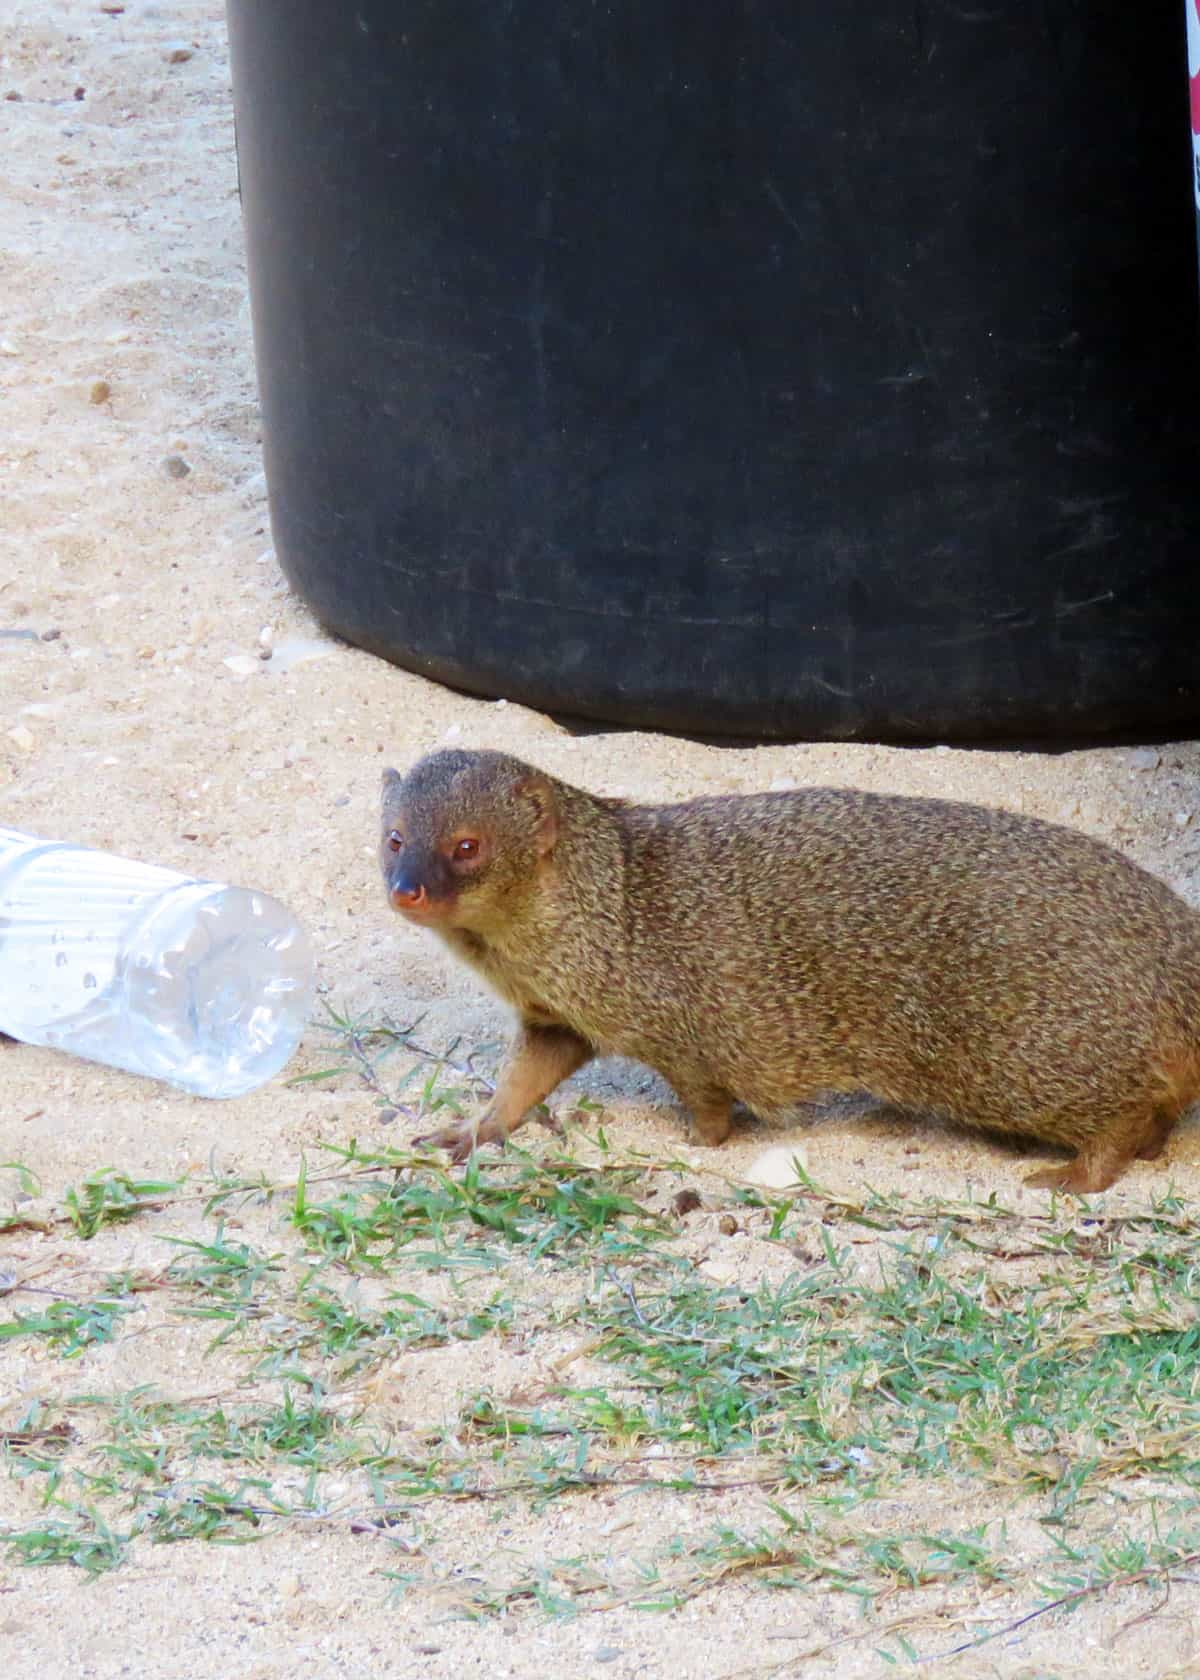 Mongoose invasive species